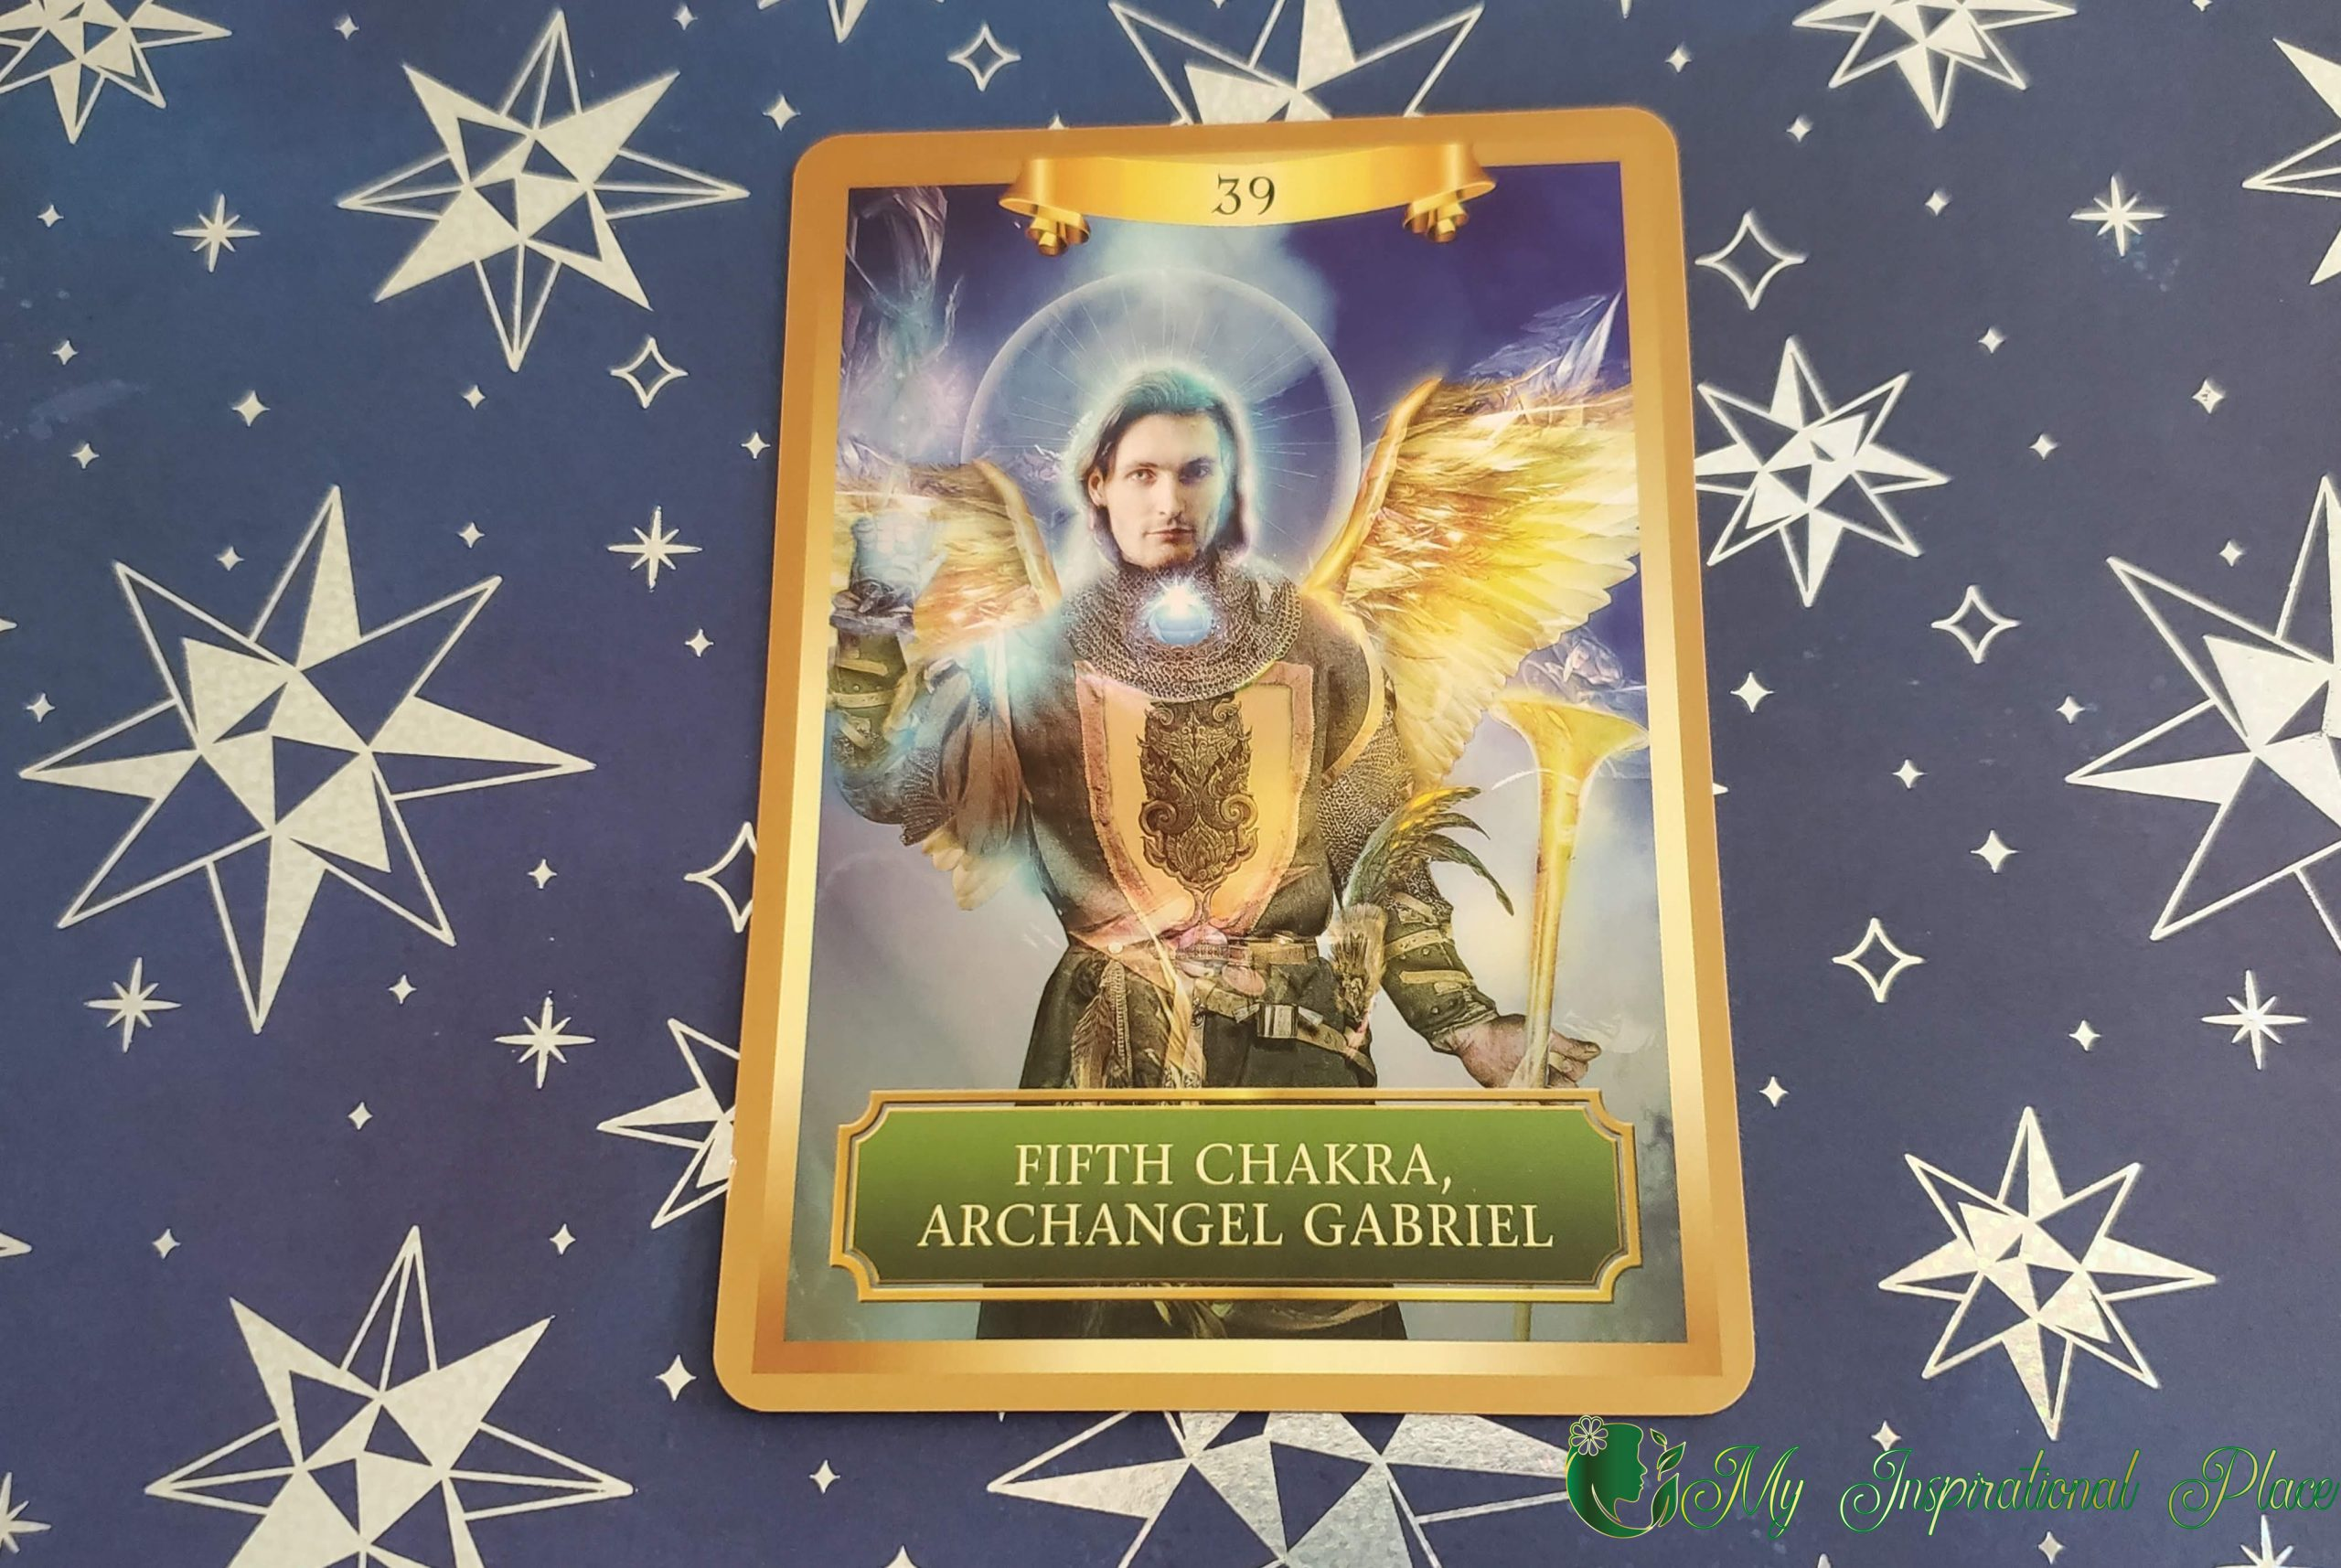 Card of the Day for April 15, 2020 – Fifth Chakra, Archangel Gabriel